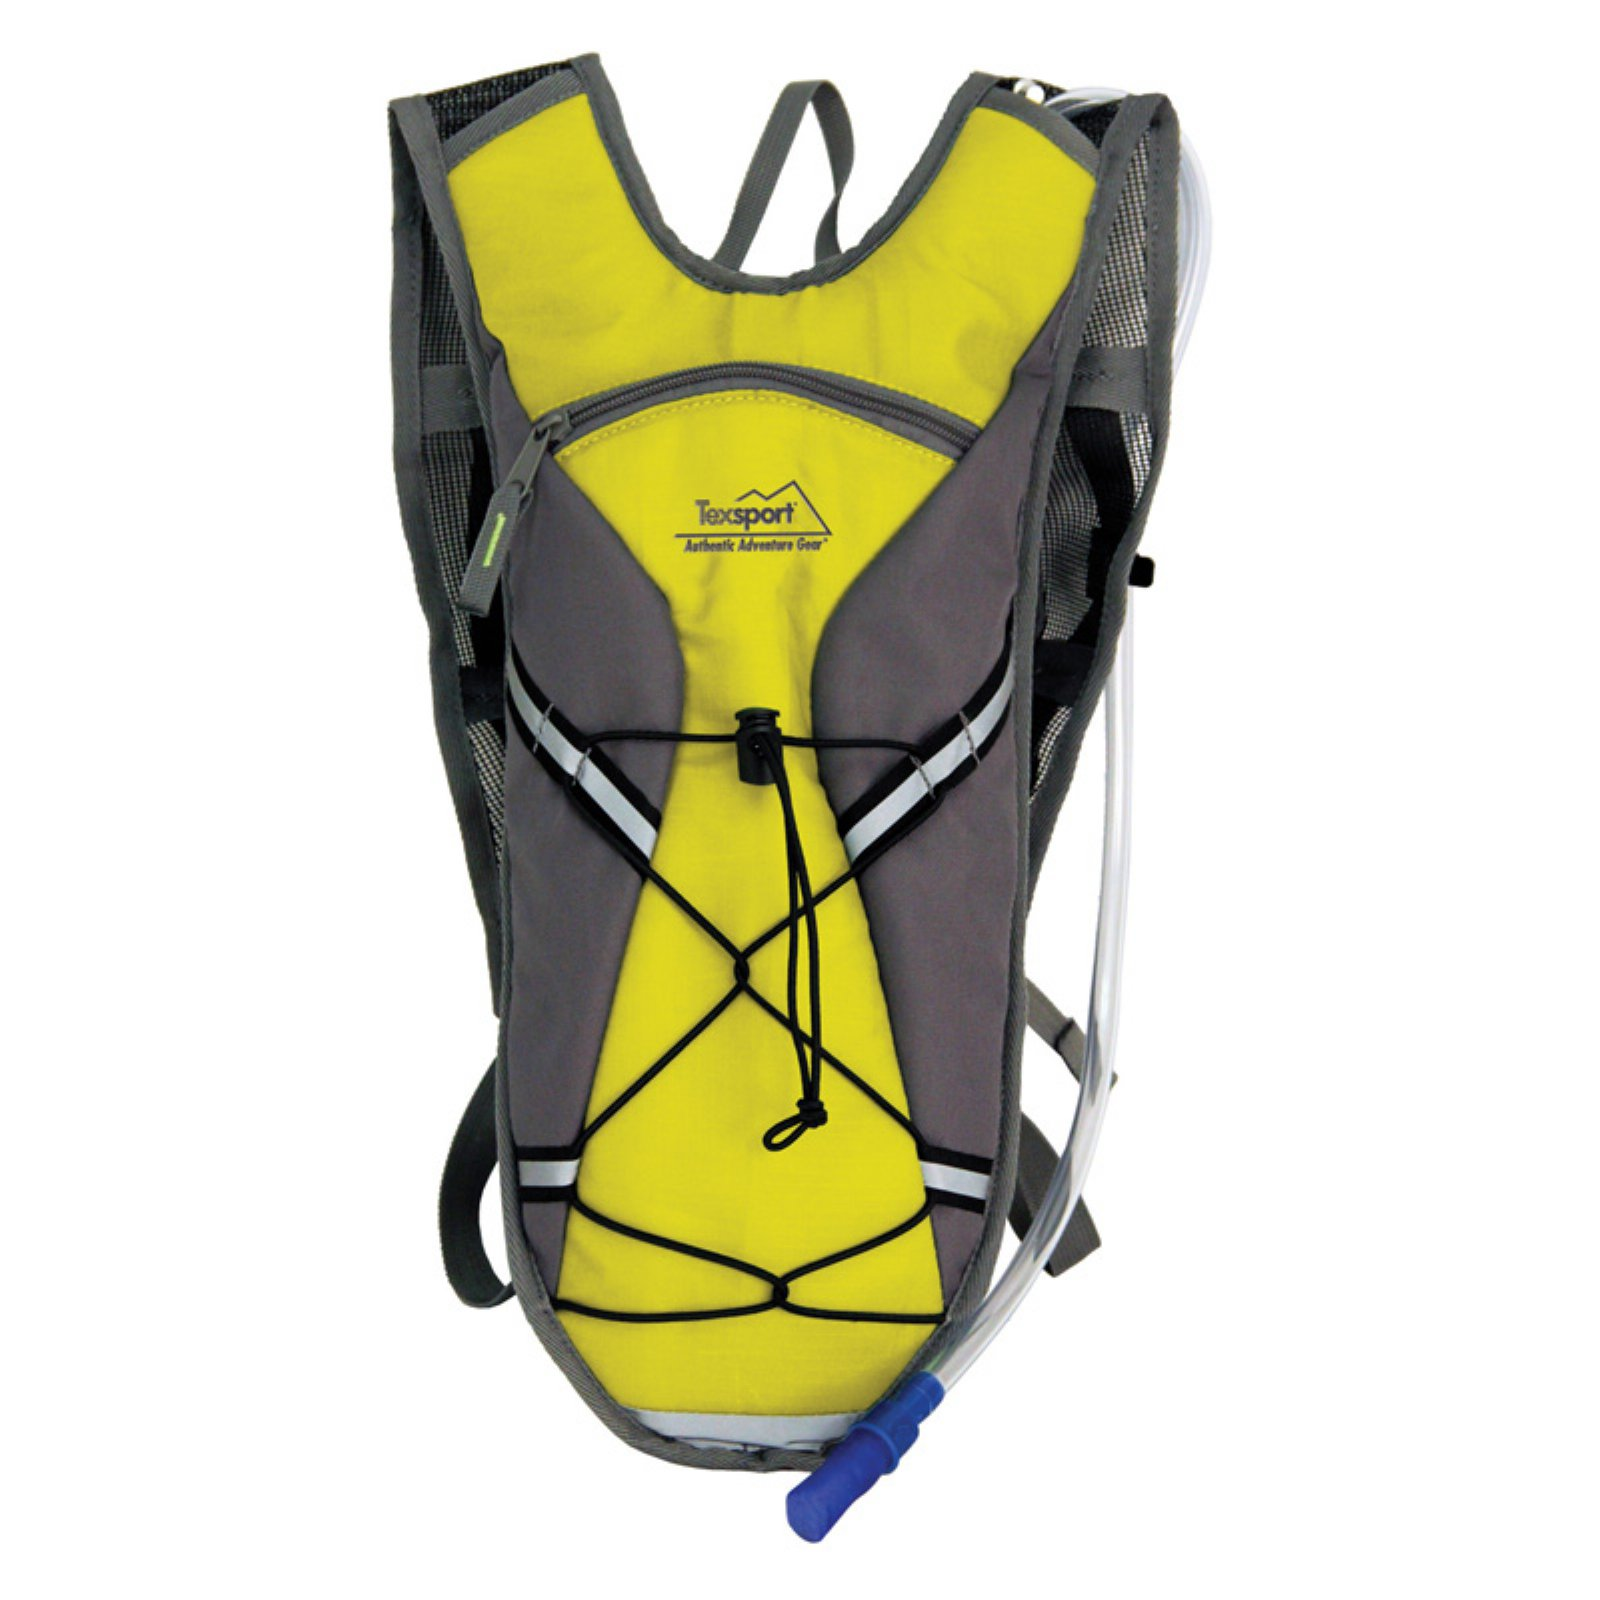 Texsport Brazos Hydration Pack by Texsport